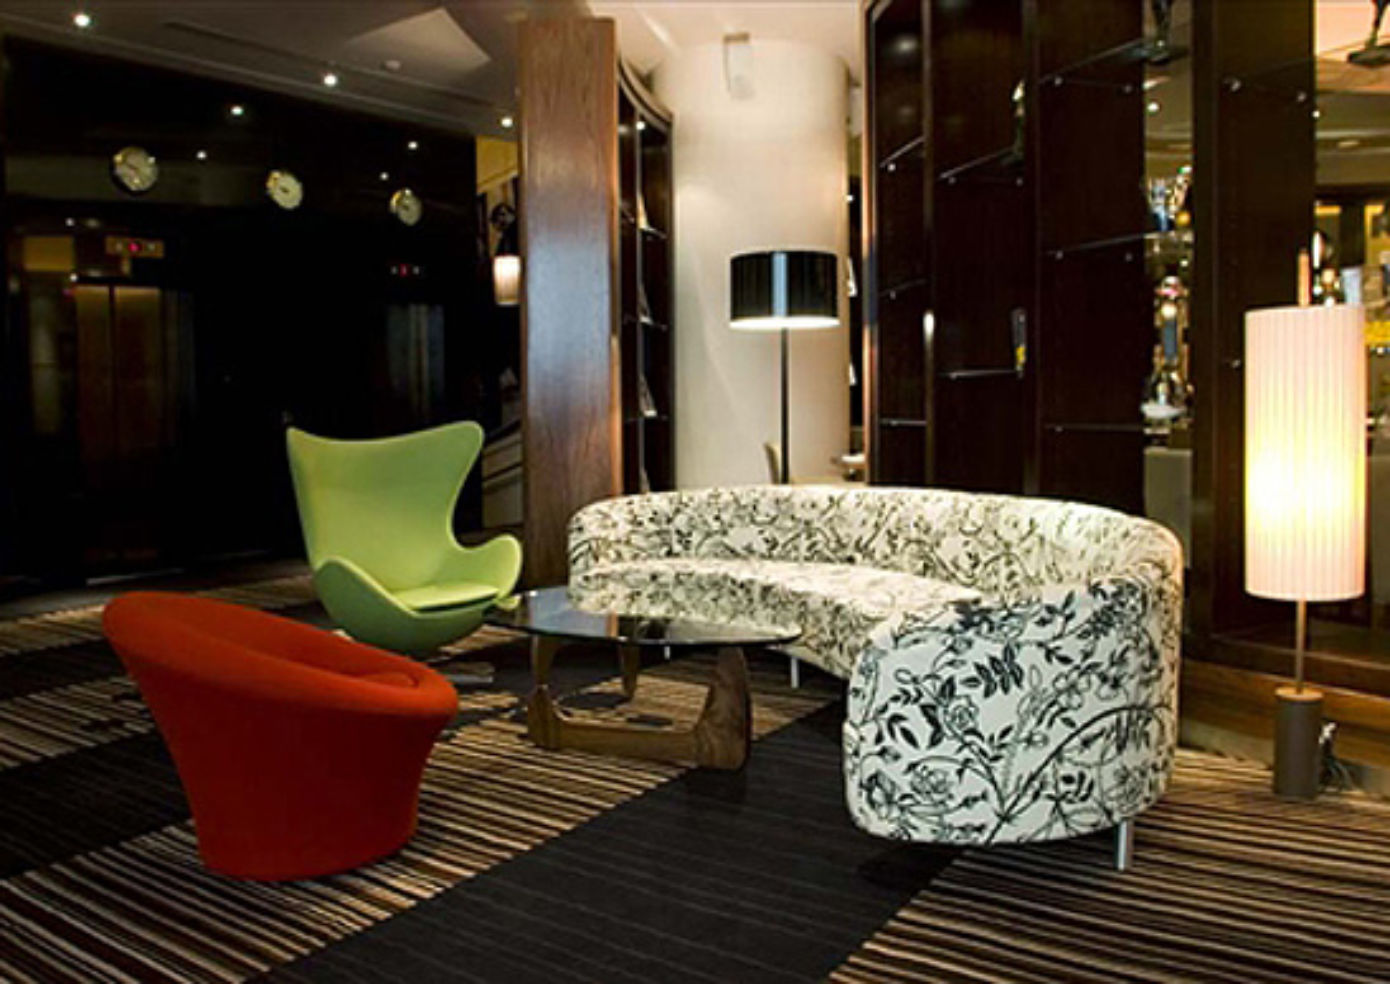 The reception area at Hard Days Night Hotel